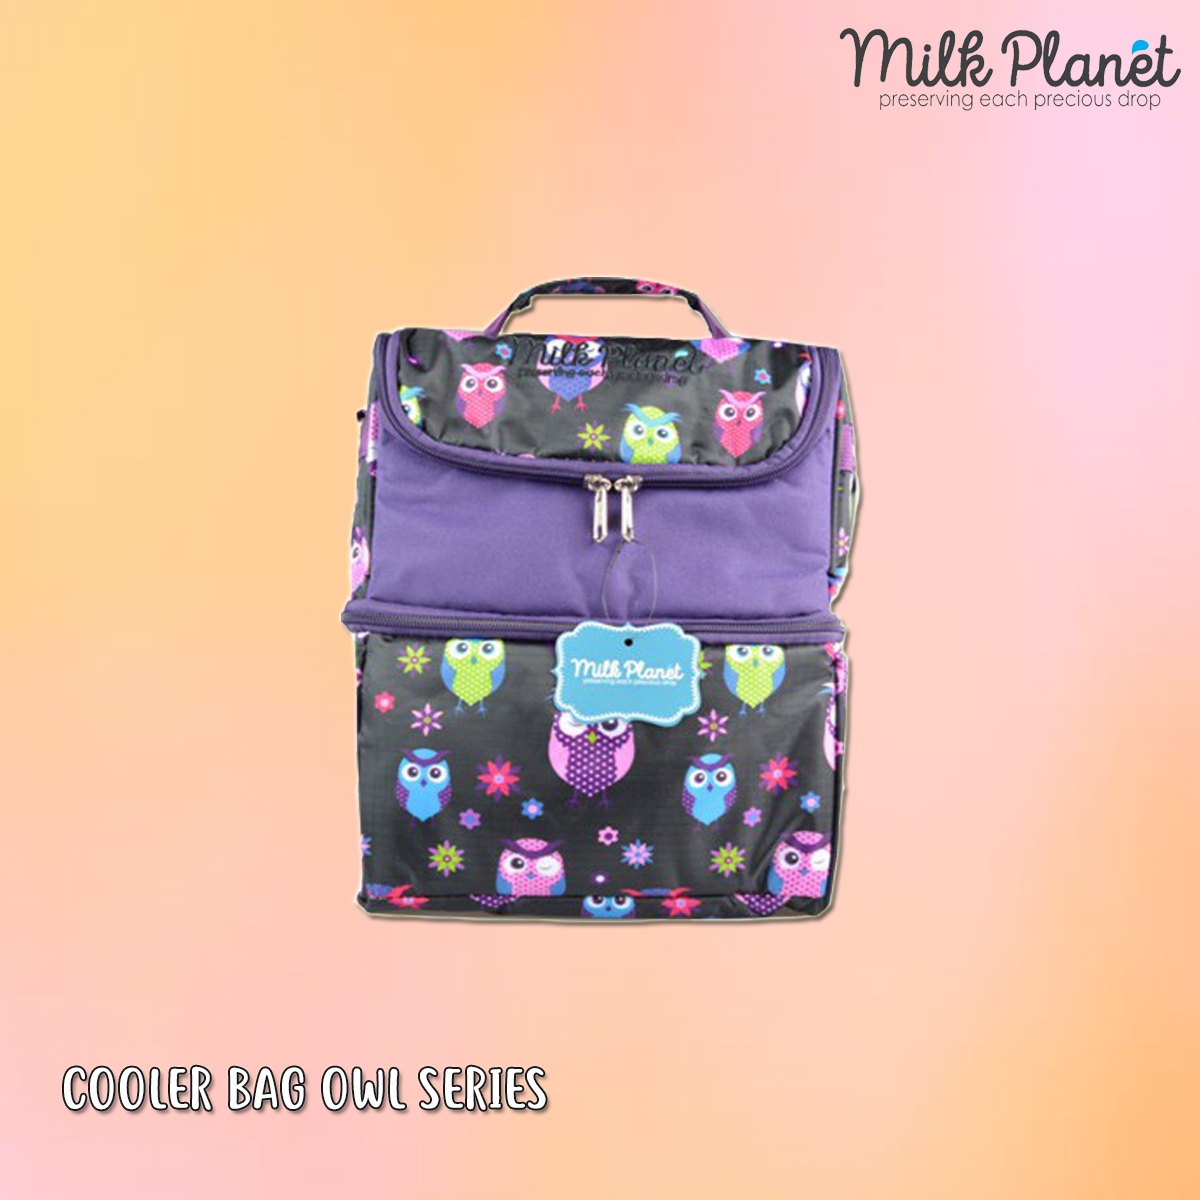 COOLER BAG OWL SERIES BLACK.jpg